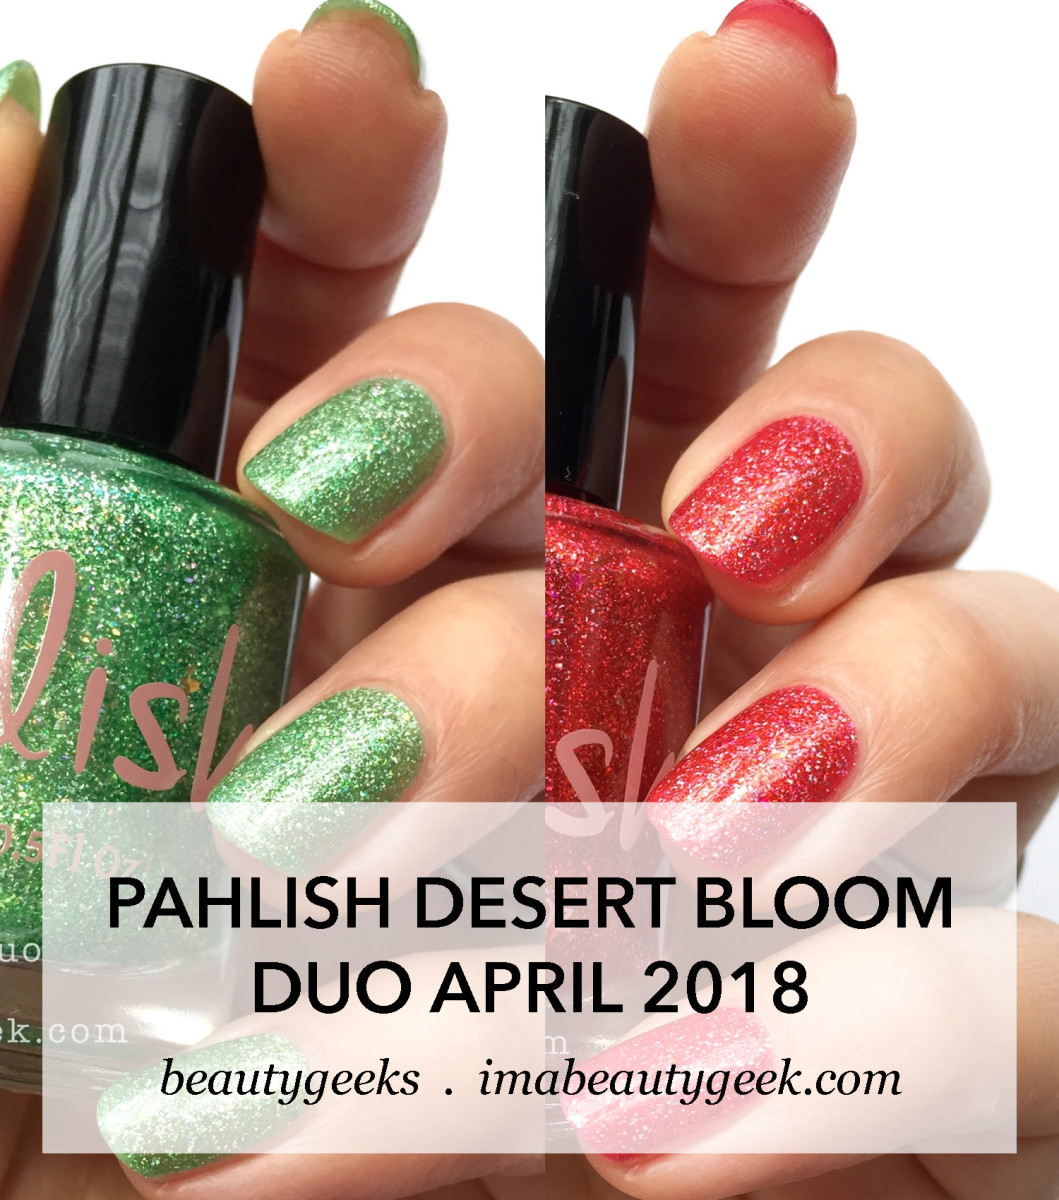 Pahlish Desert Bloom duo April 2018 swatches-Manigeek-Beautygeeks